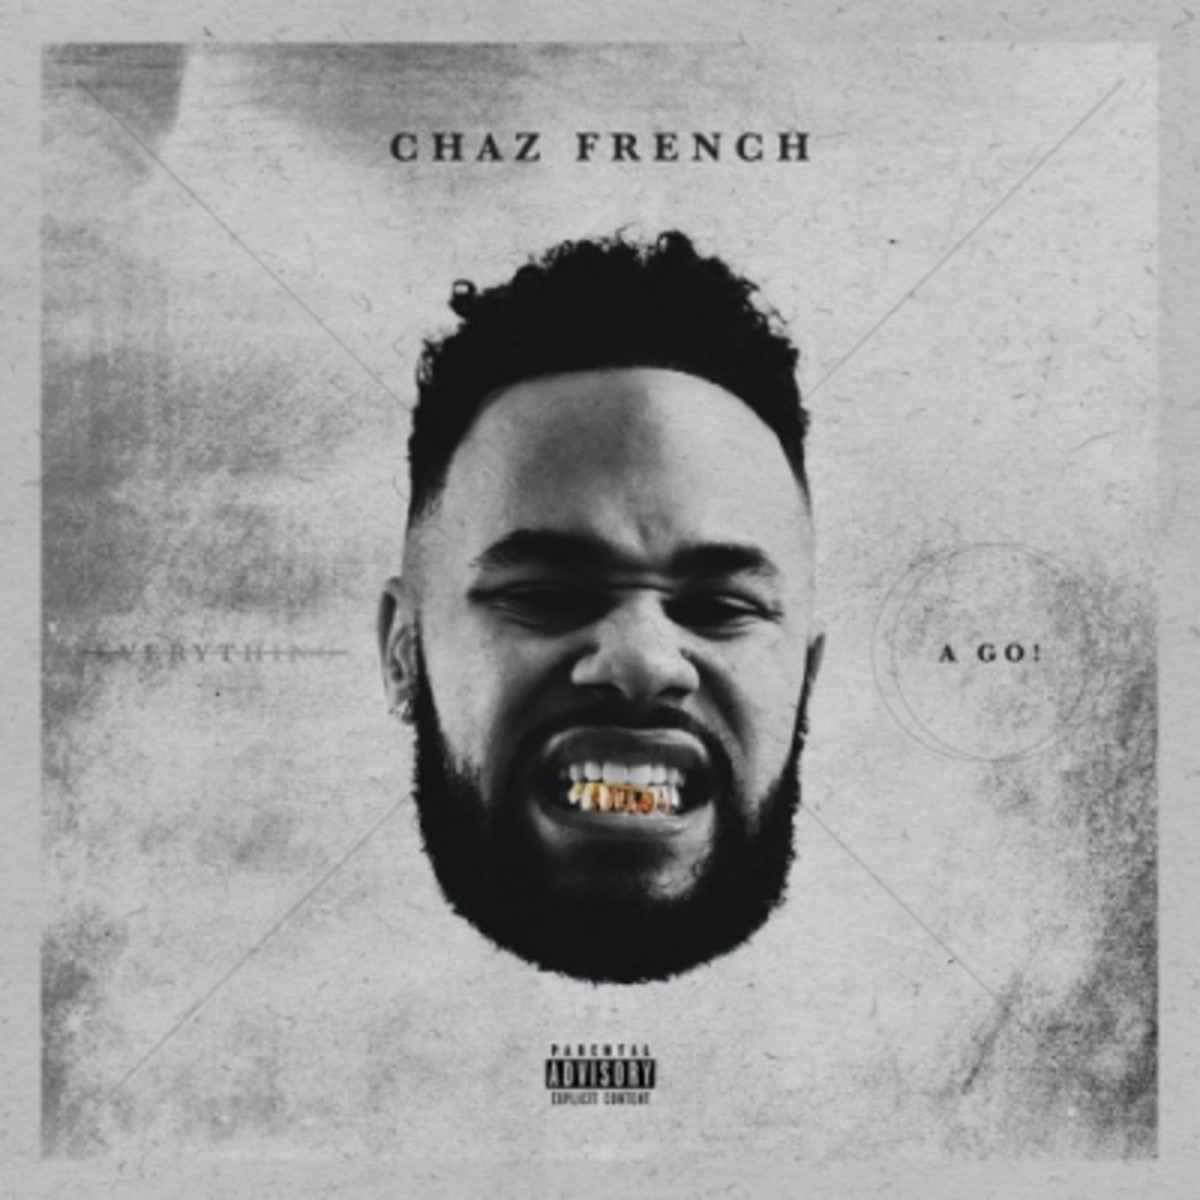 chaz-french-a-go.jpg